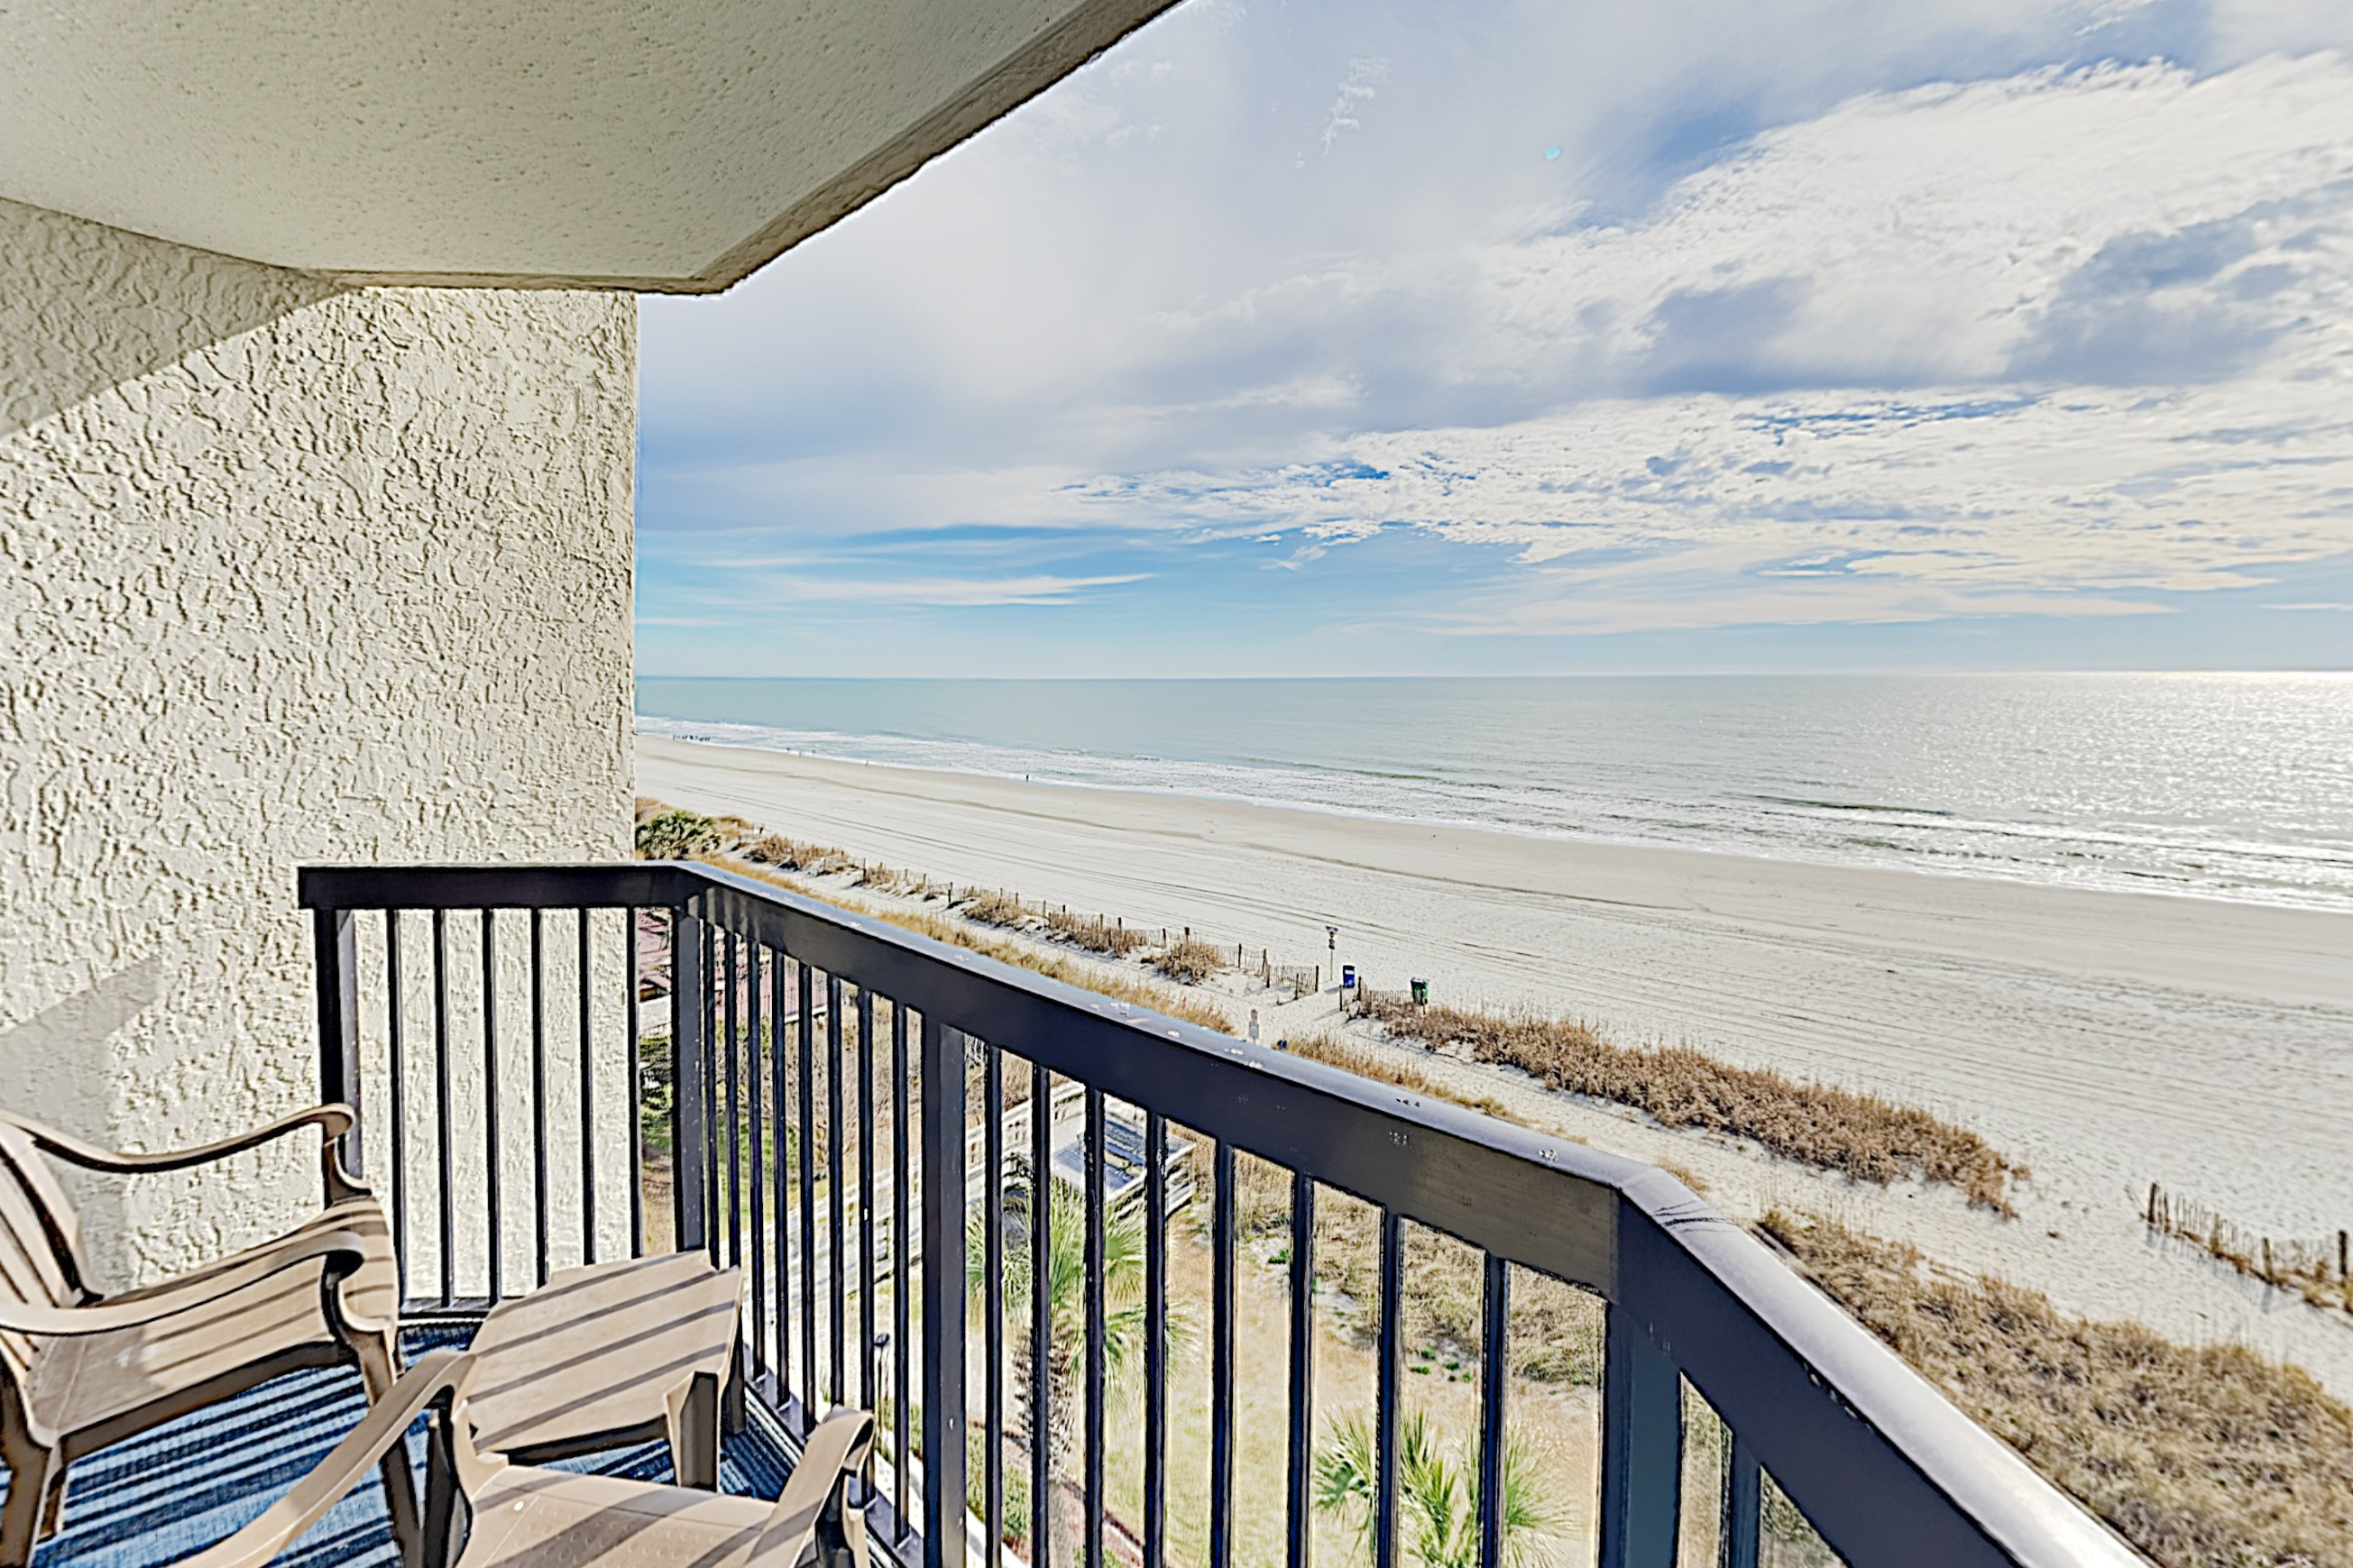 Myrtle Beach SC Vacation Rental Welcome! This condo